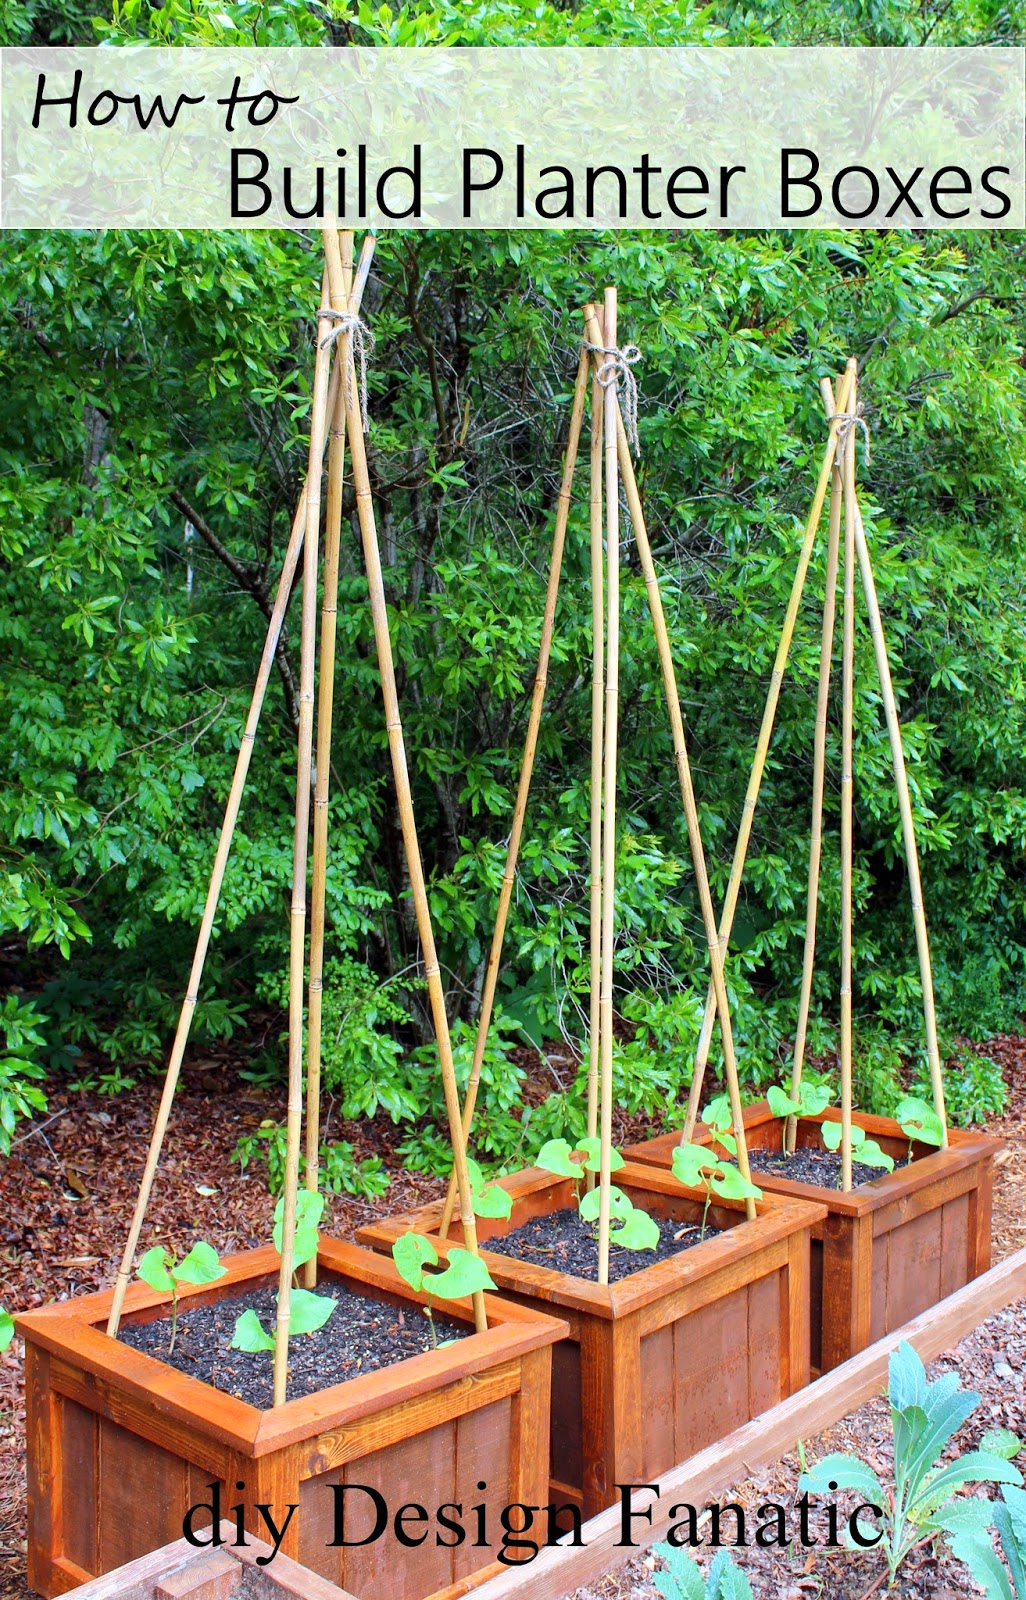 Diy design fanatic diy projects of 2013 for Indoor gardening green beans